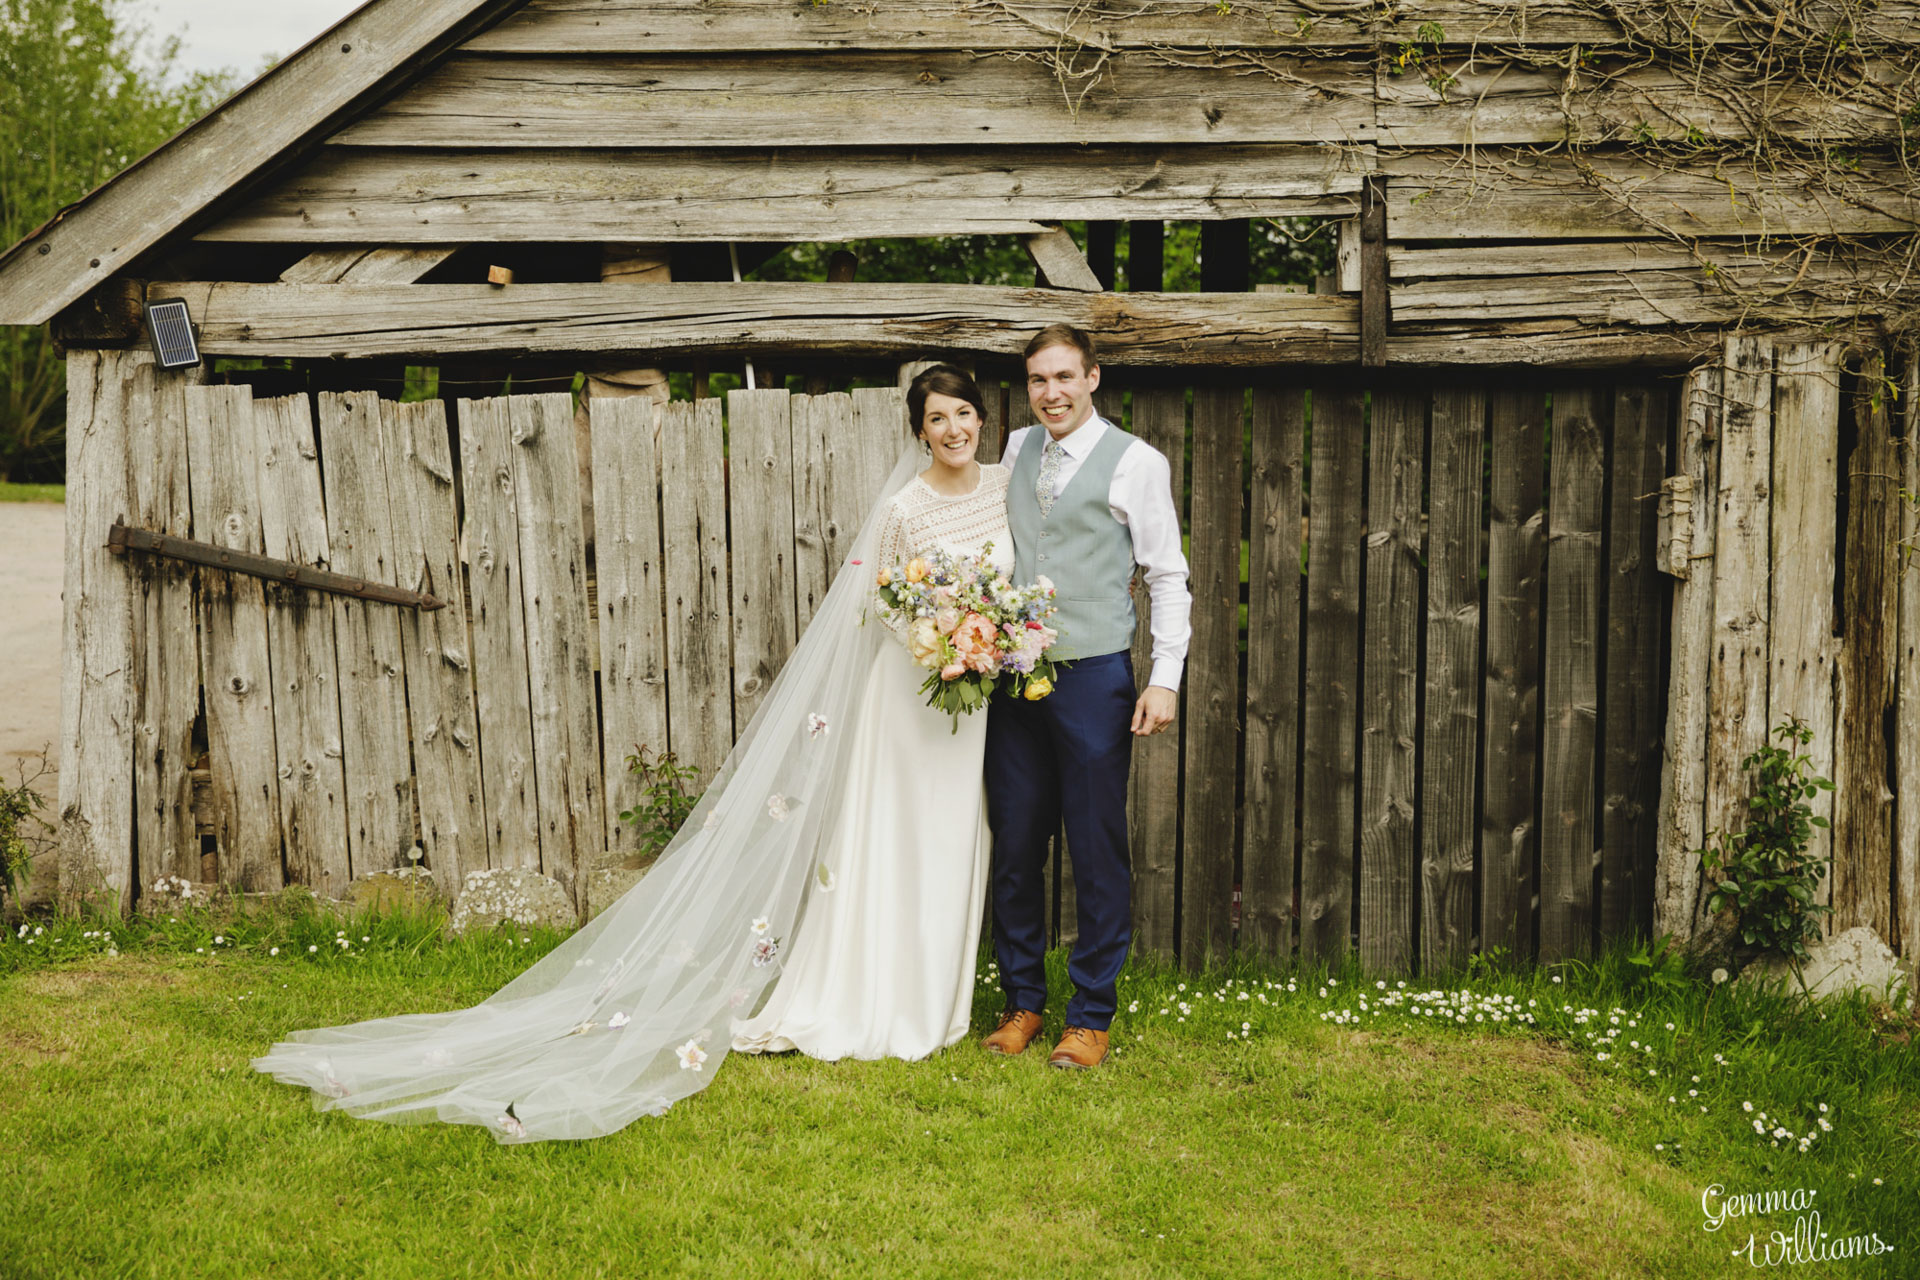 HaybarnWedding_GemmaWilliamsPhoto151.jpg